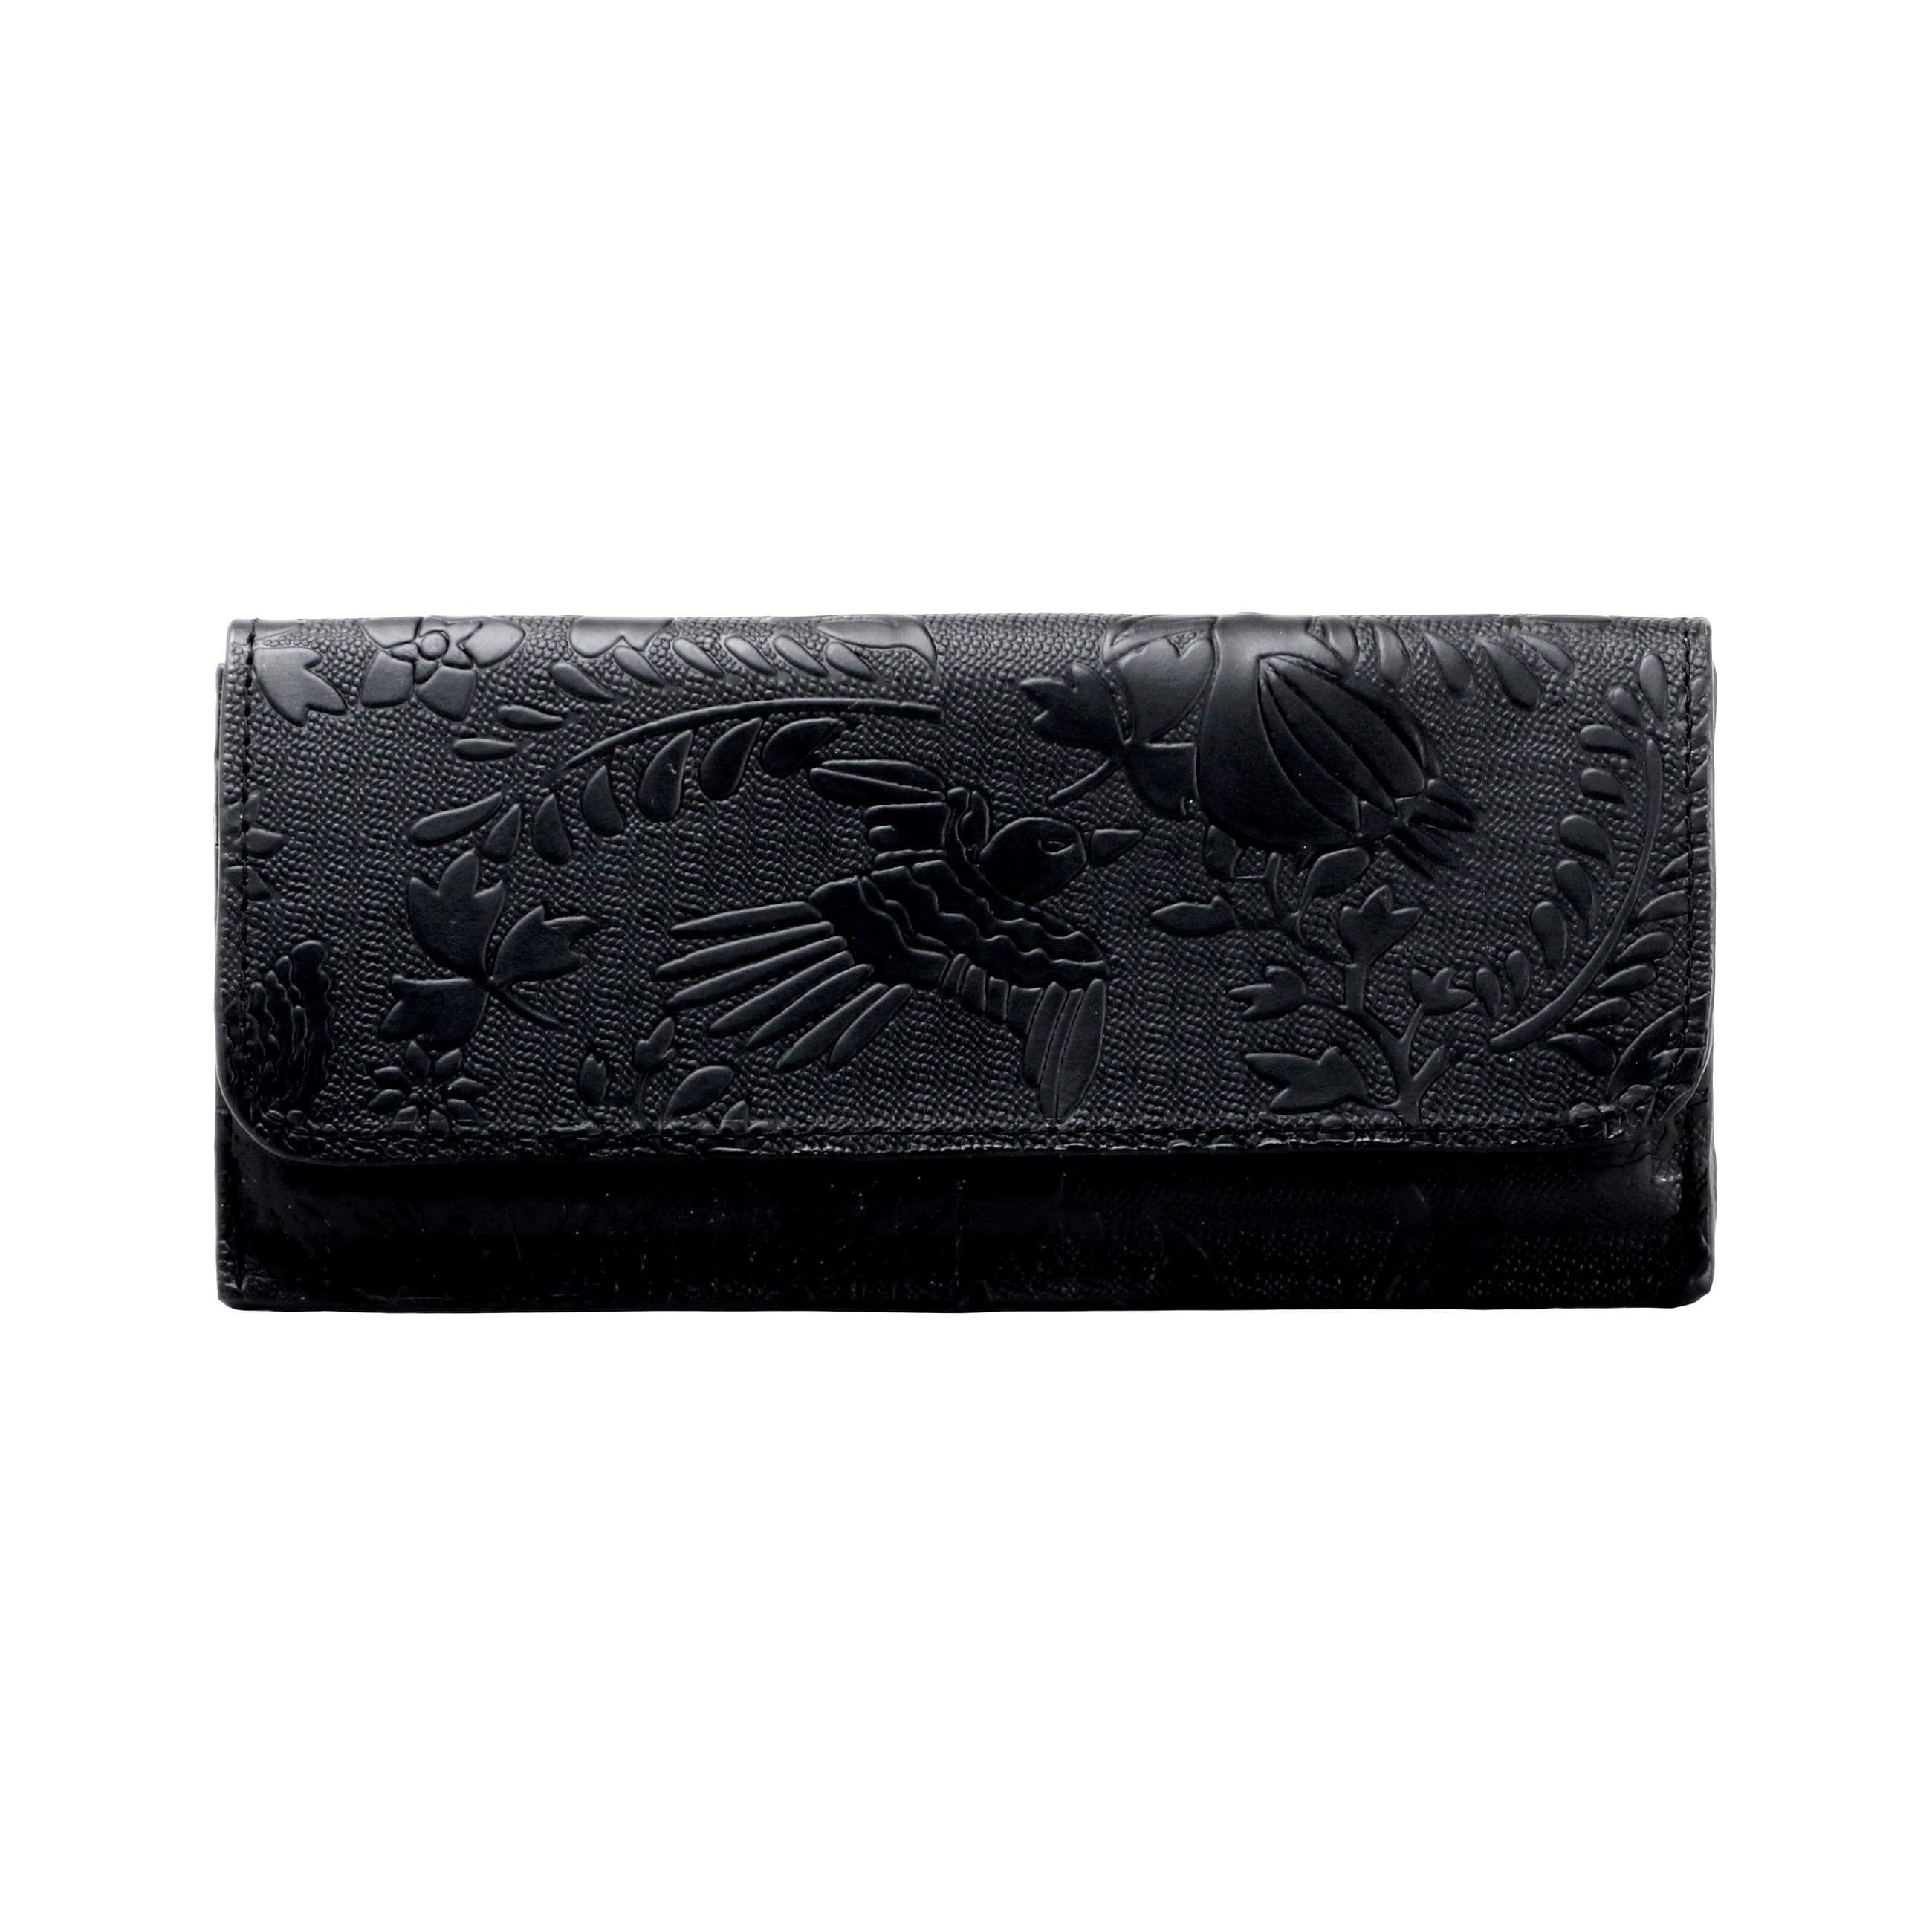 Otomí Embossed Black Leather Wallet